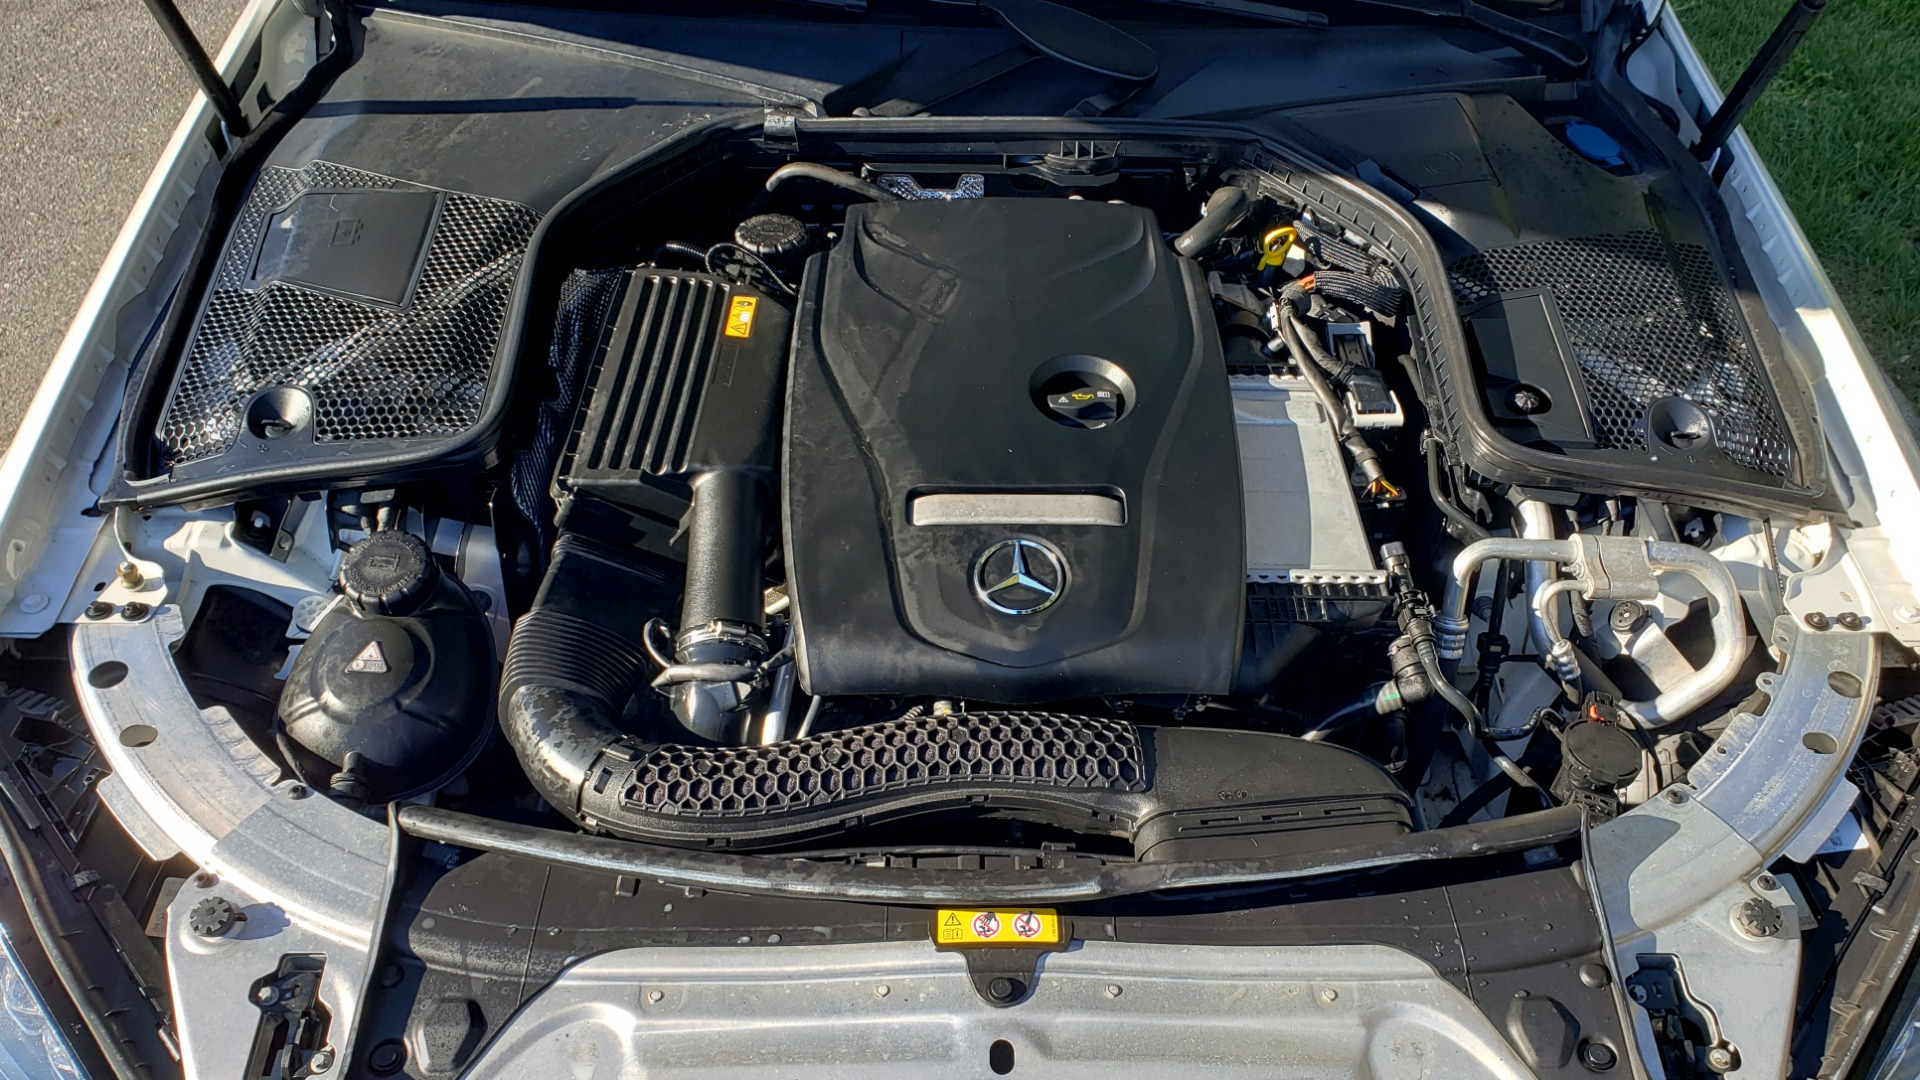 Used 2017 Mercedes-Benz C-CLASS C 300 SPORT / PREM PKG / PANO-ROOF / NAV / HTD STST / REARVIEW for sale Sold at Formula Imports in Charlotte NC 28227 11